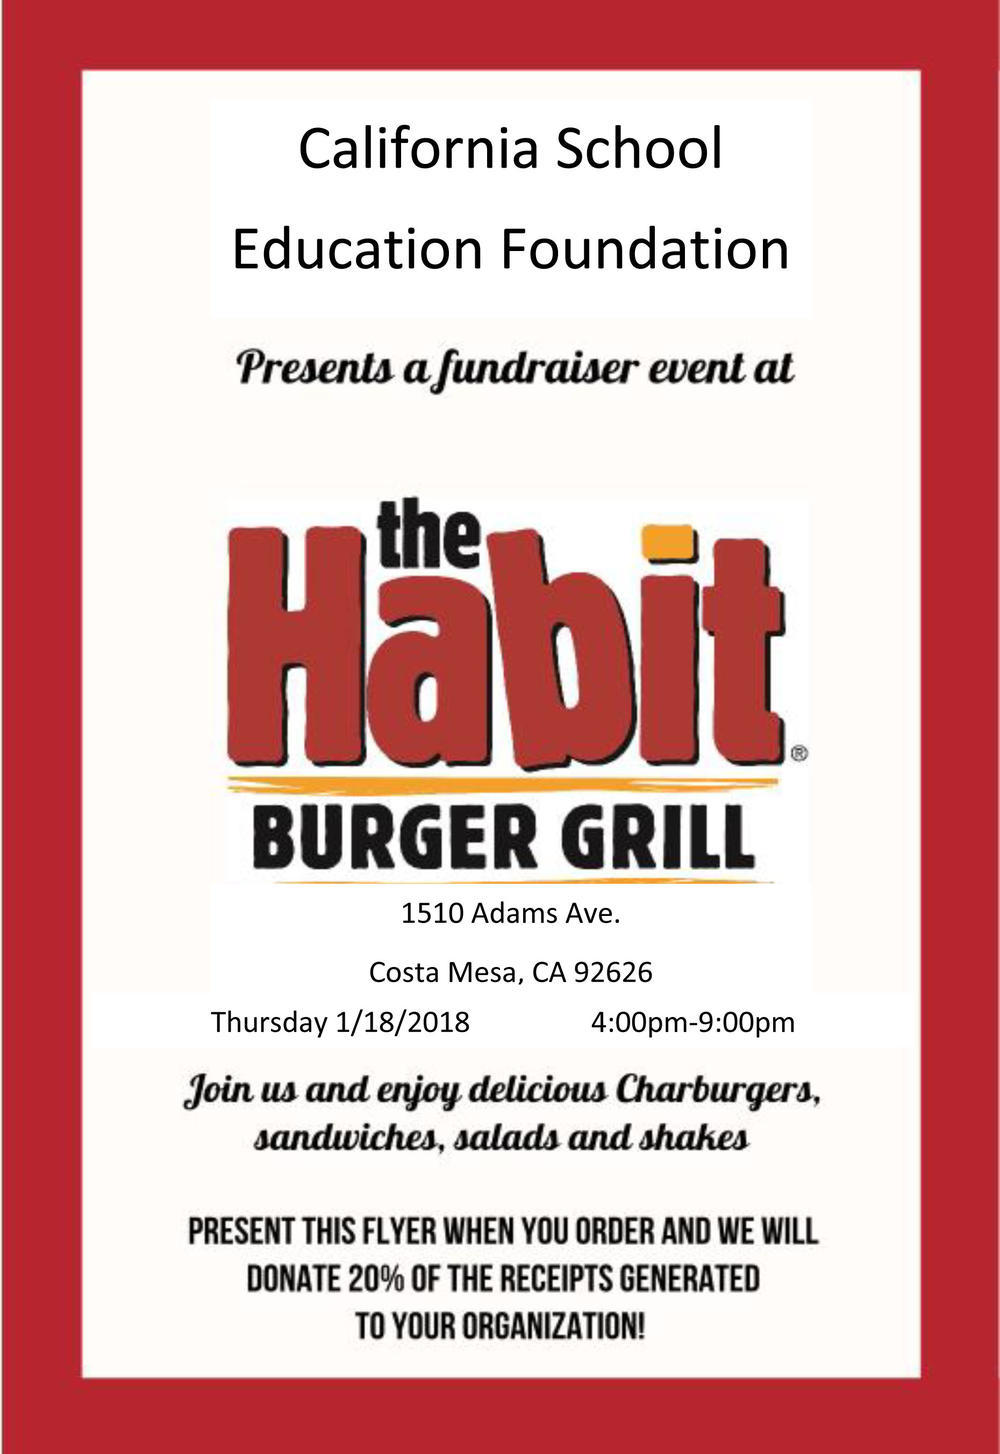 the Habit Burger Grill Flyer